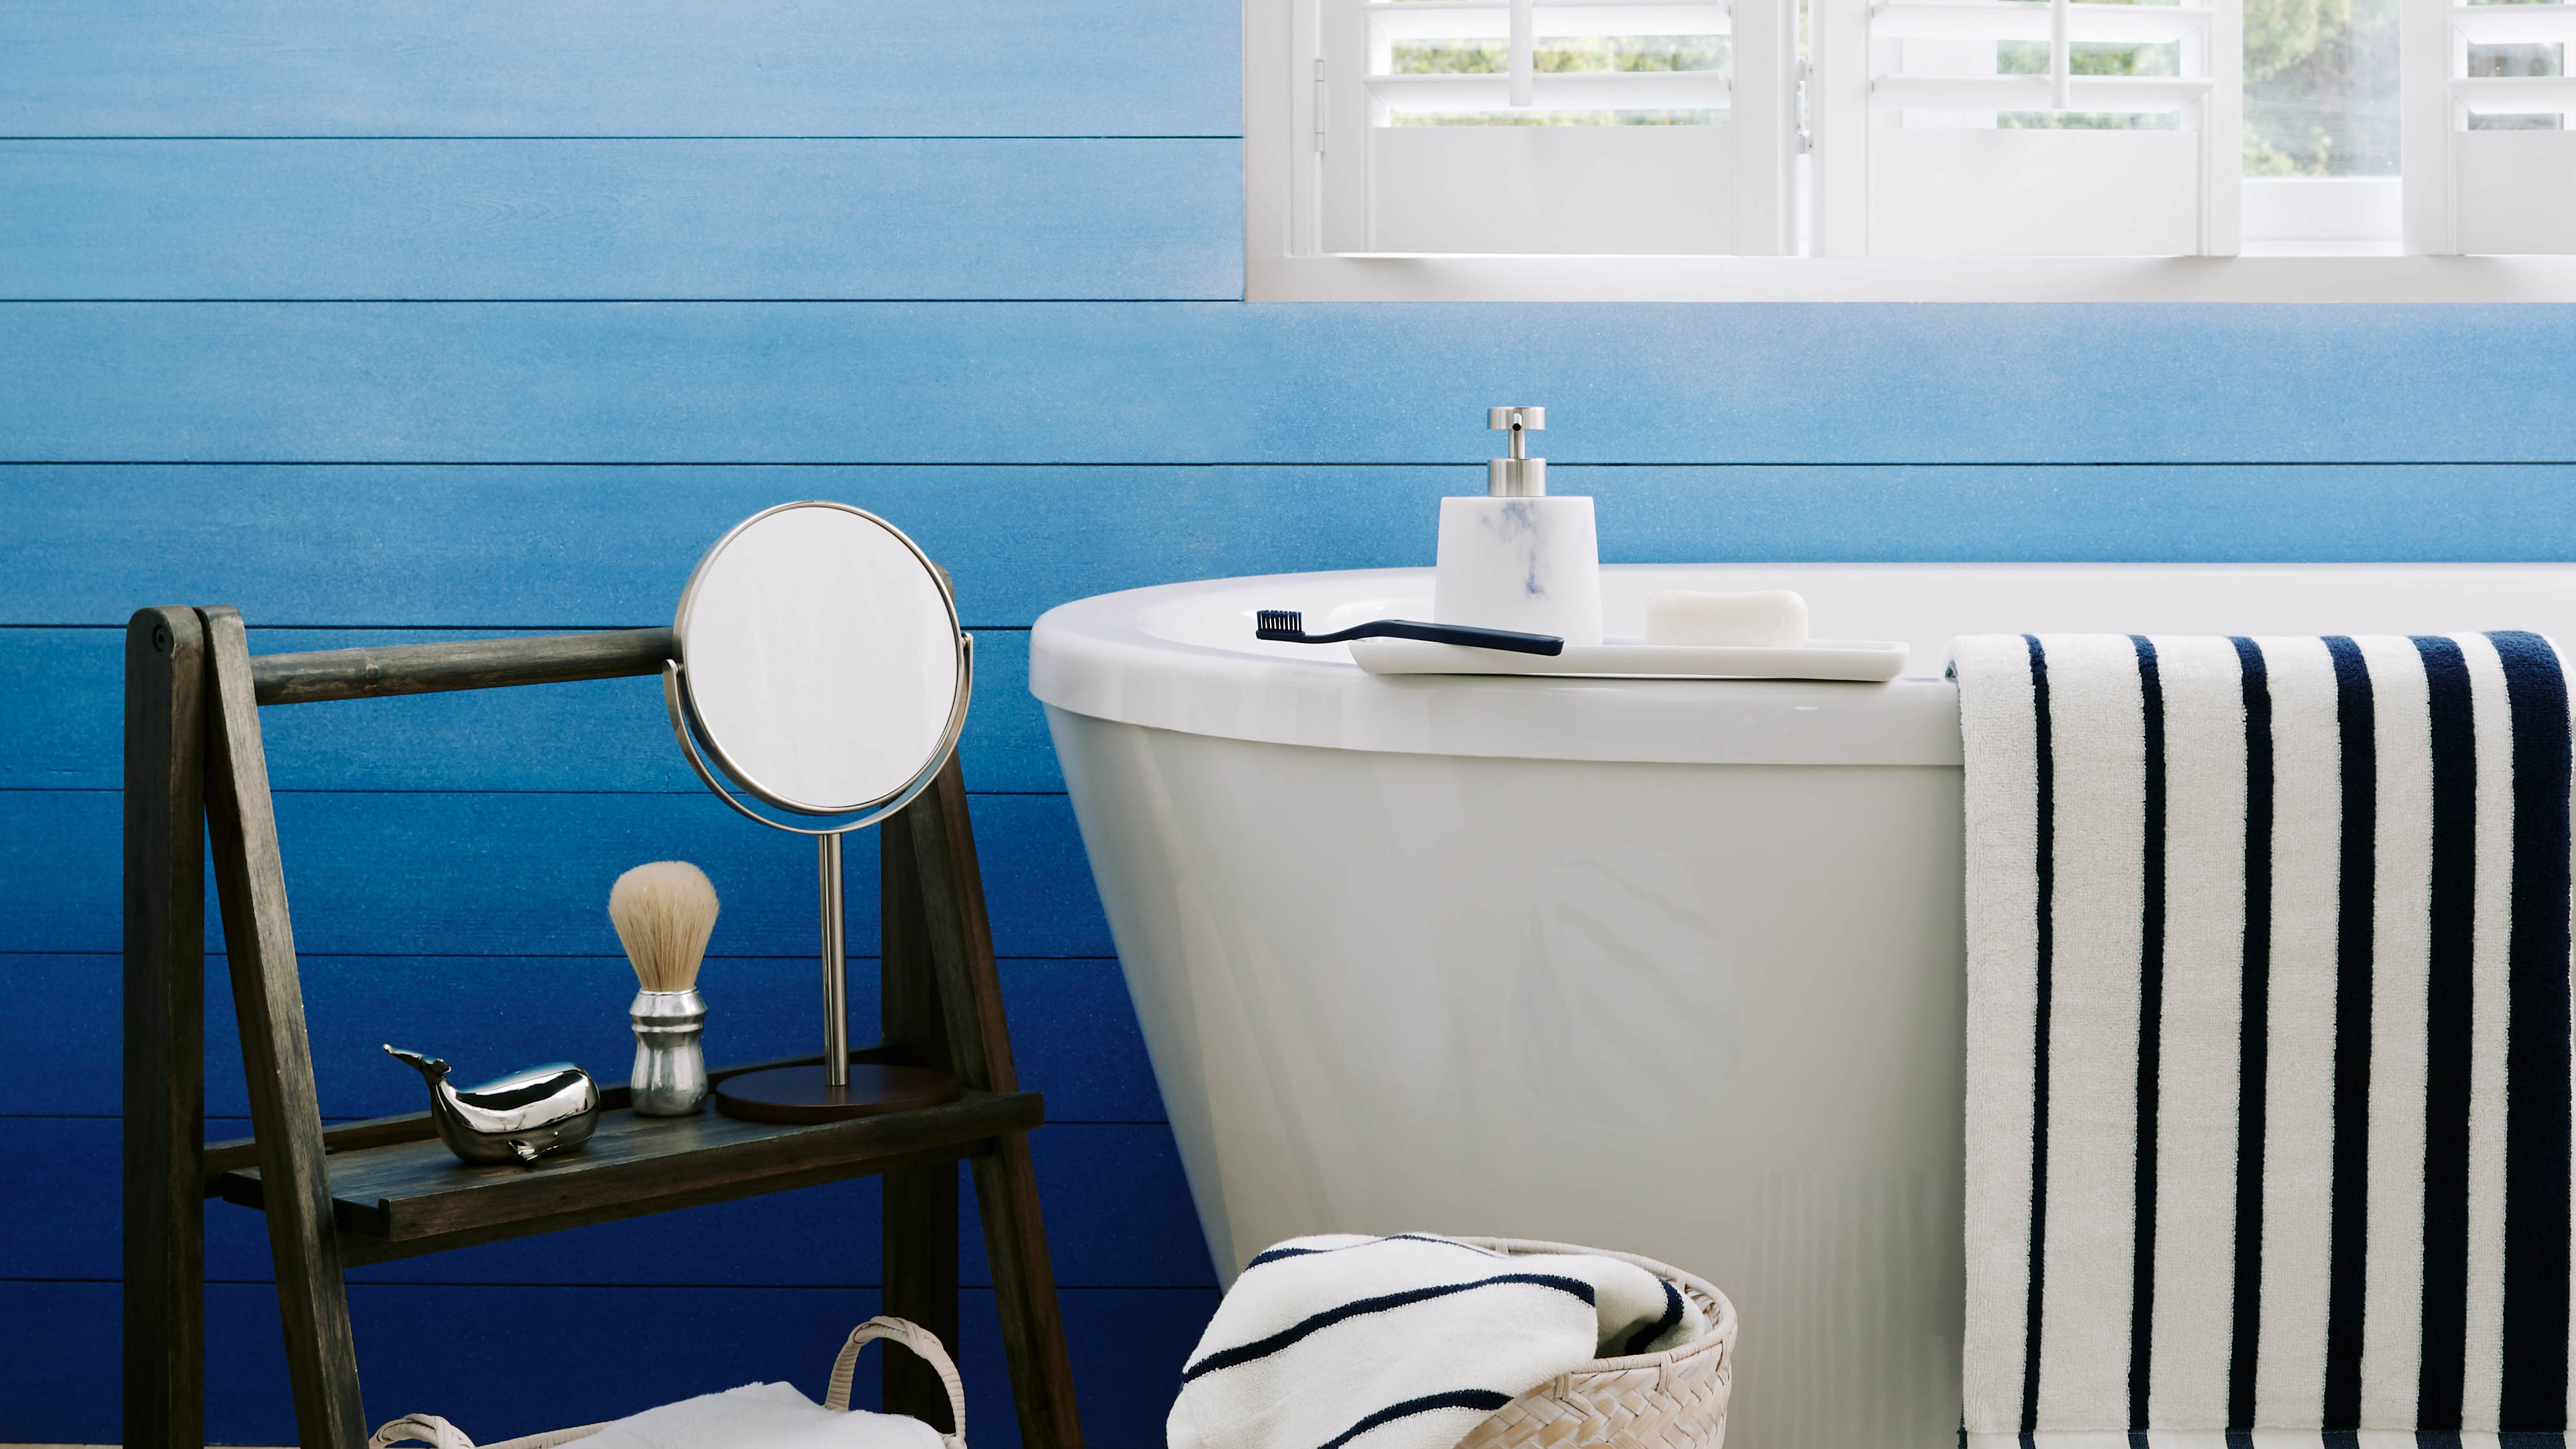 15 storage ideas for small bathrooms | Real Homes